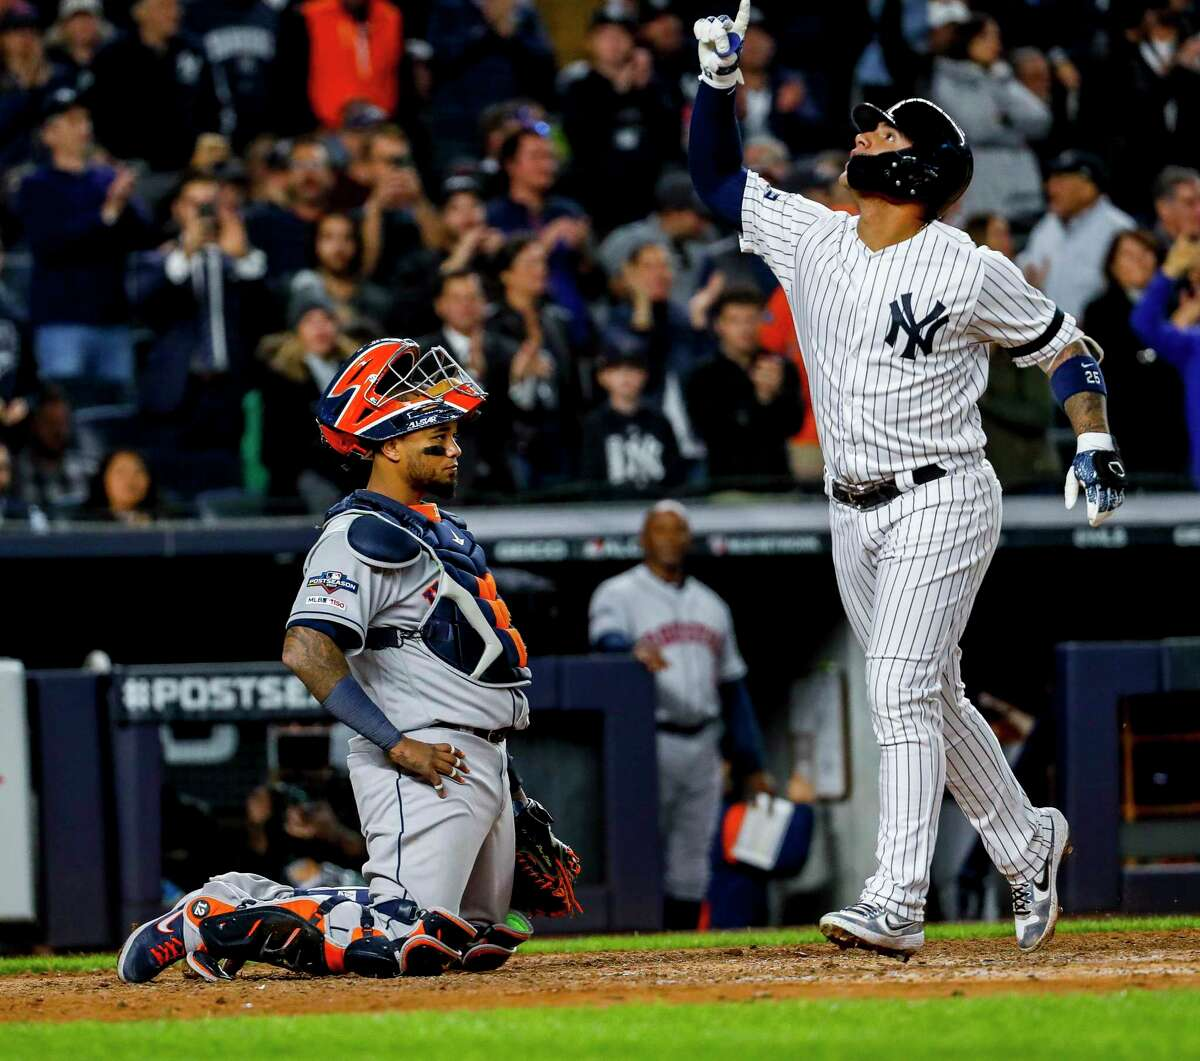 Houston Astros catcher Martin Maldonado (12) watches as New York Yankees second baseman Gleyber Torres (25) crosses home plate after hitting a solo home run during the eighth inning of Game 3 of the American League Championship Series at Yankee Stadium in New York on Tuesday, Oct. 15, 2019.